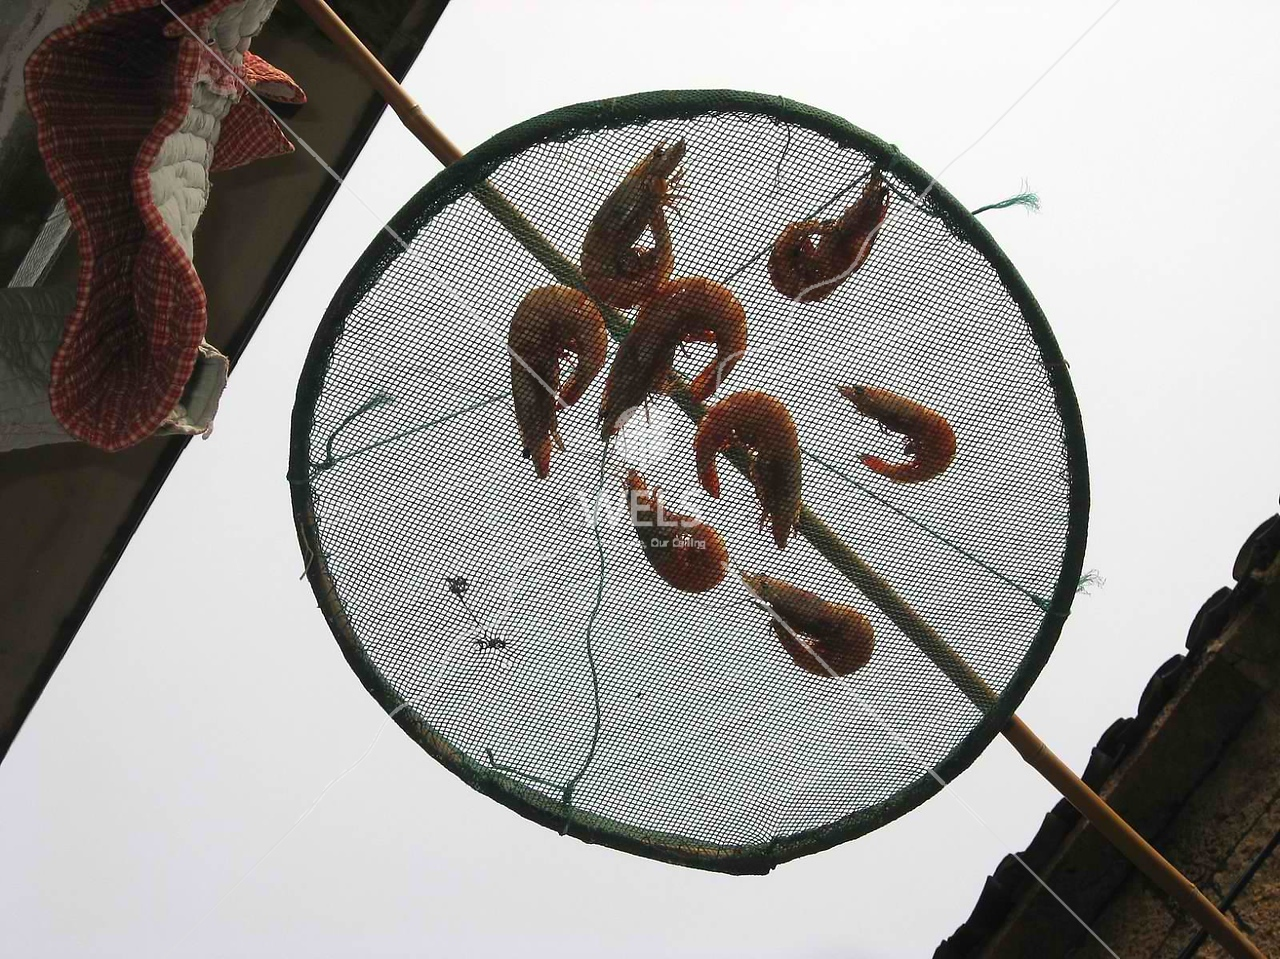 Drying prawns SE coast of China by kstellick